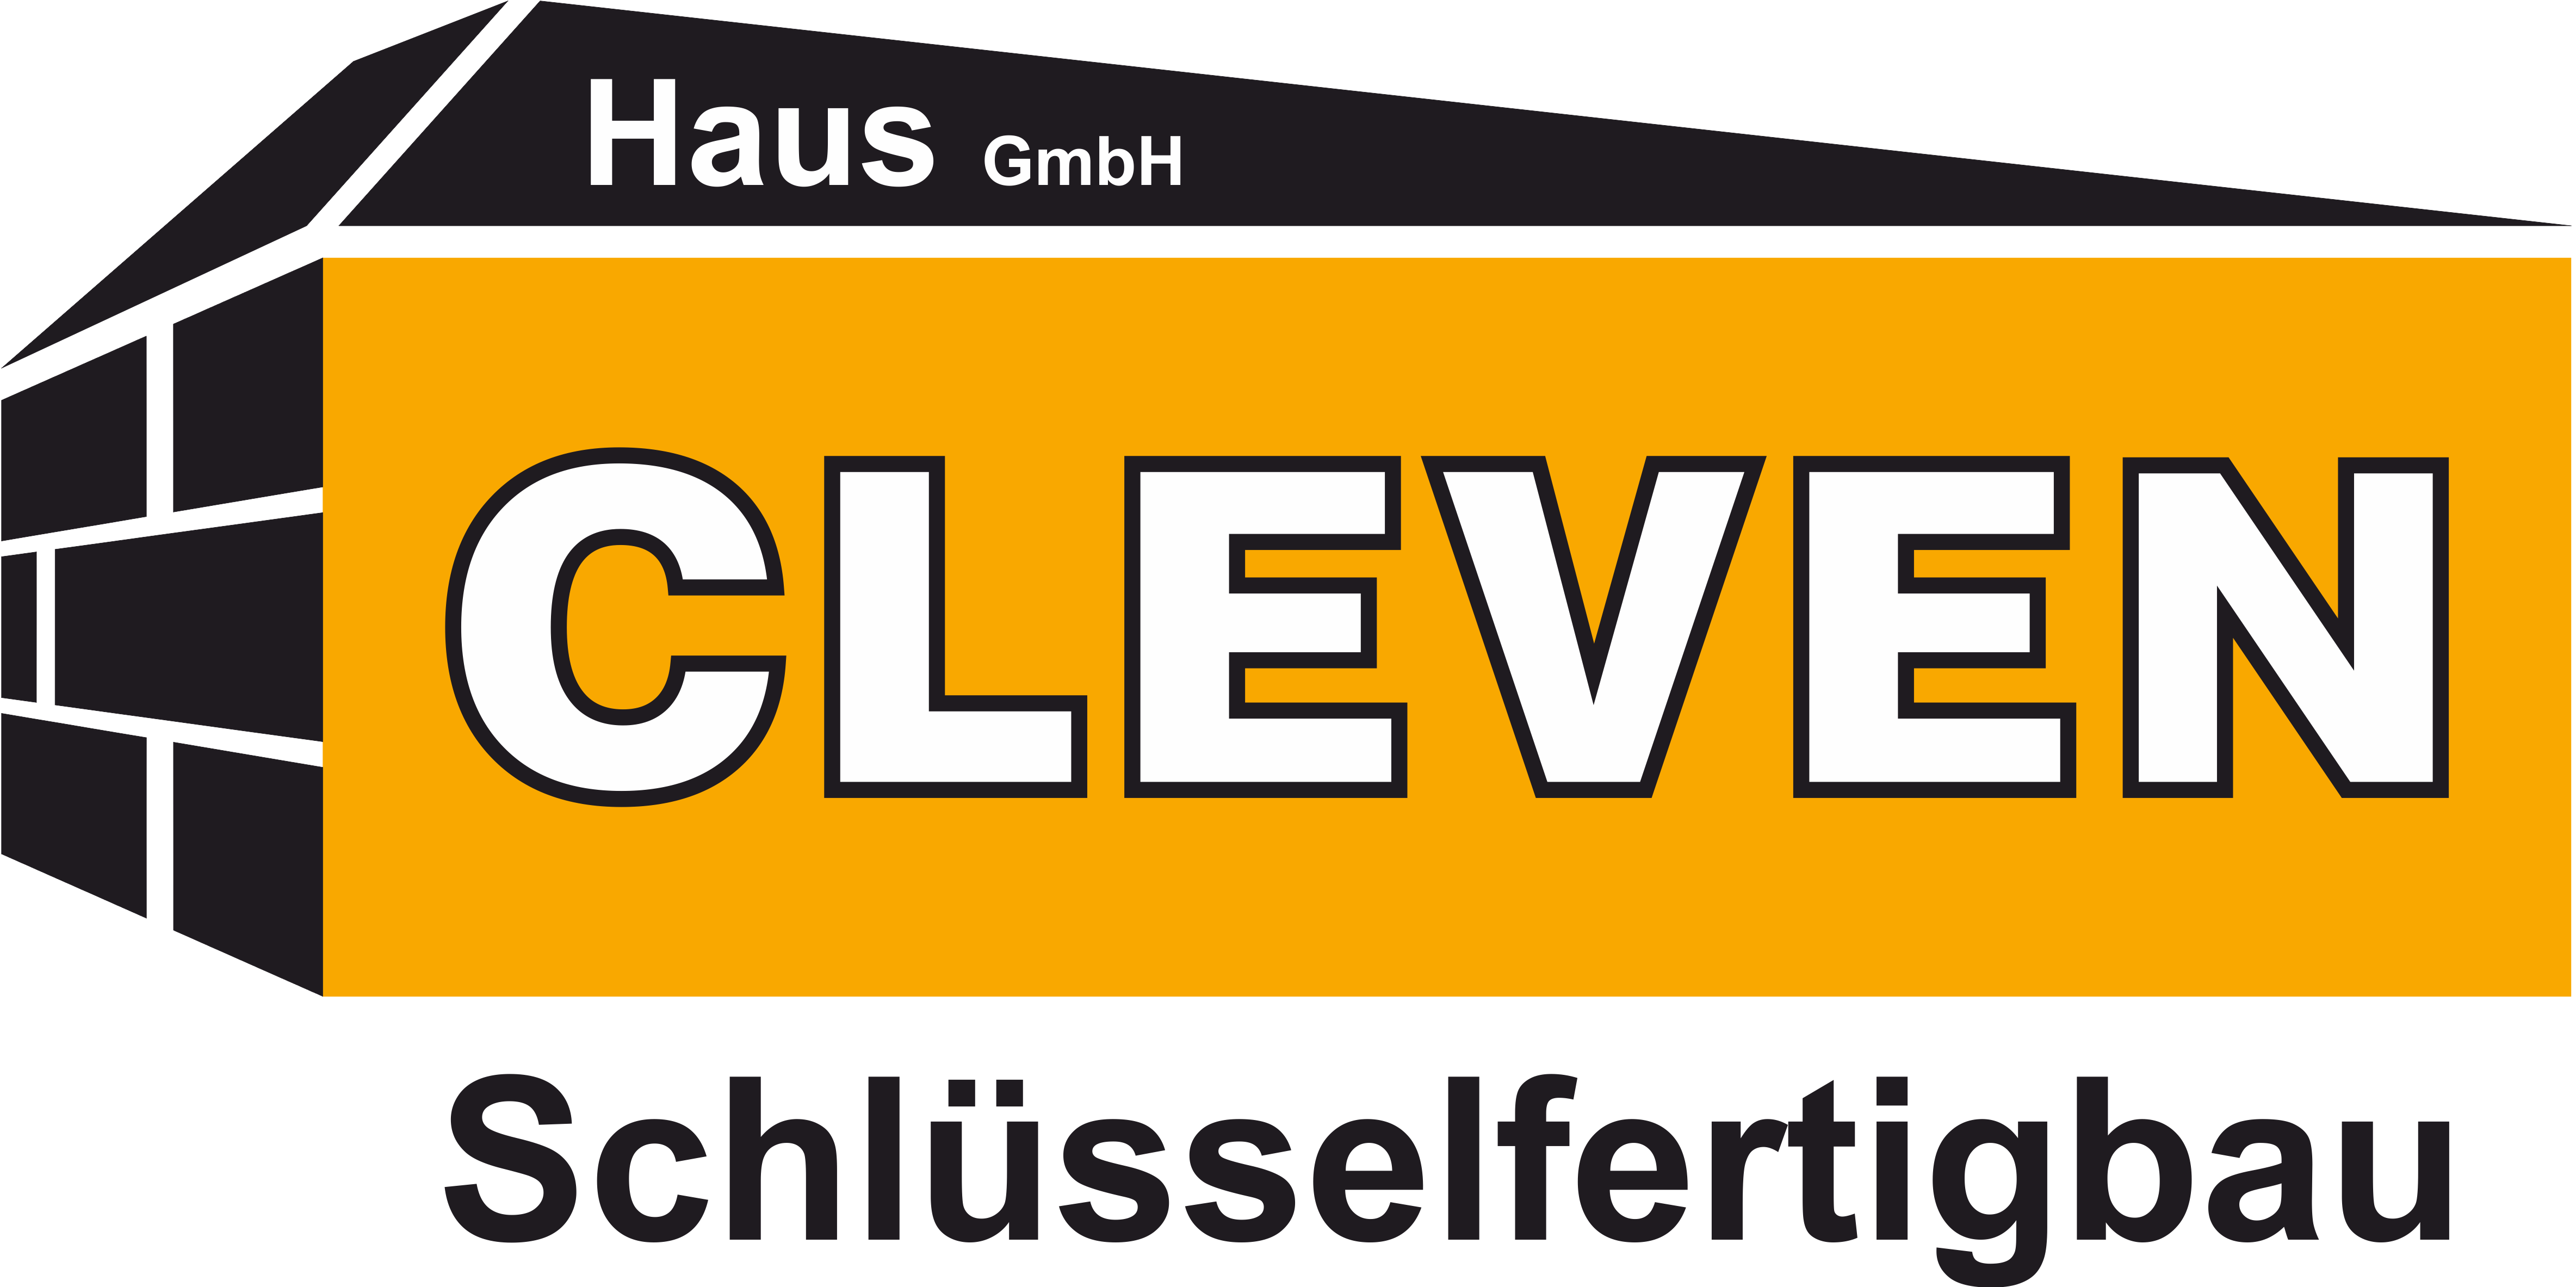 Cleven Haus